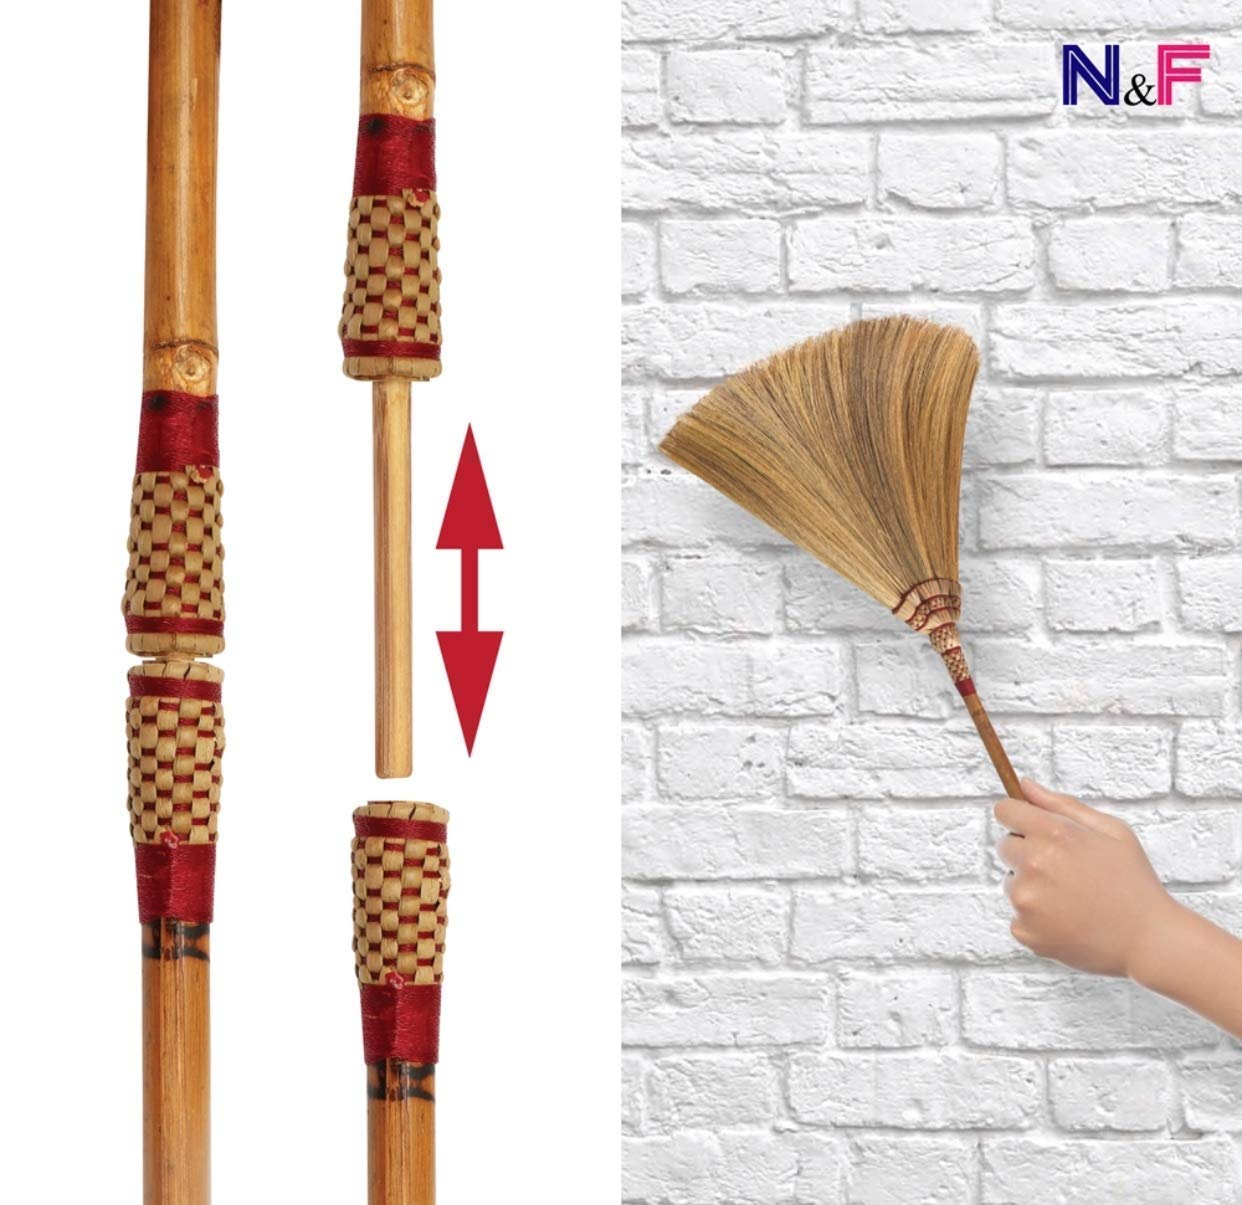 Natural Grass Broom Thai Broom Broomstick Bamboo Stick Handle Witch Broom Handmade Broom Housewarming Gift Traditional Thailand by Kalokekala